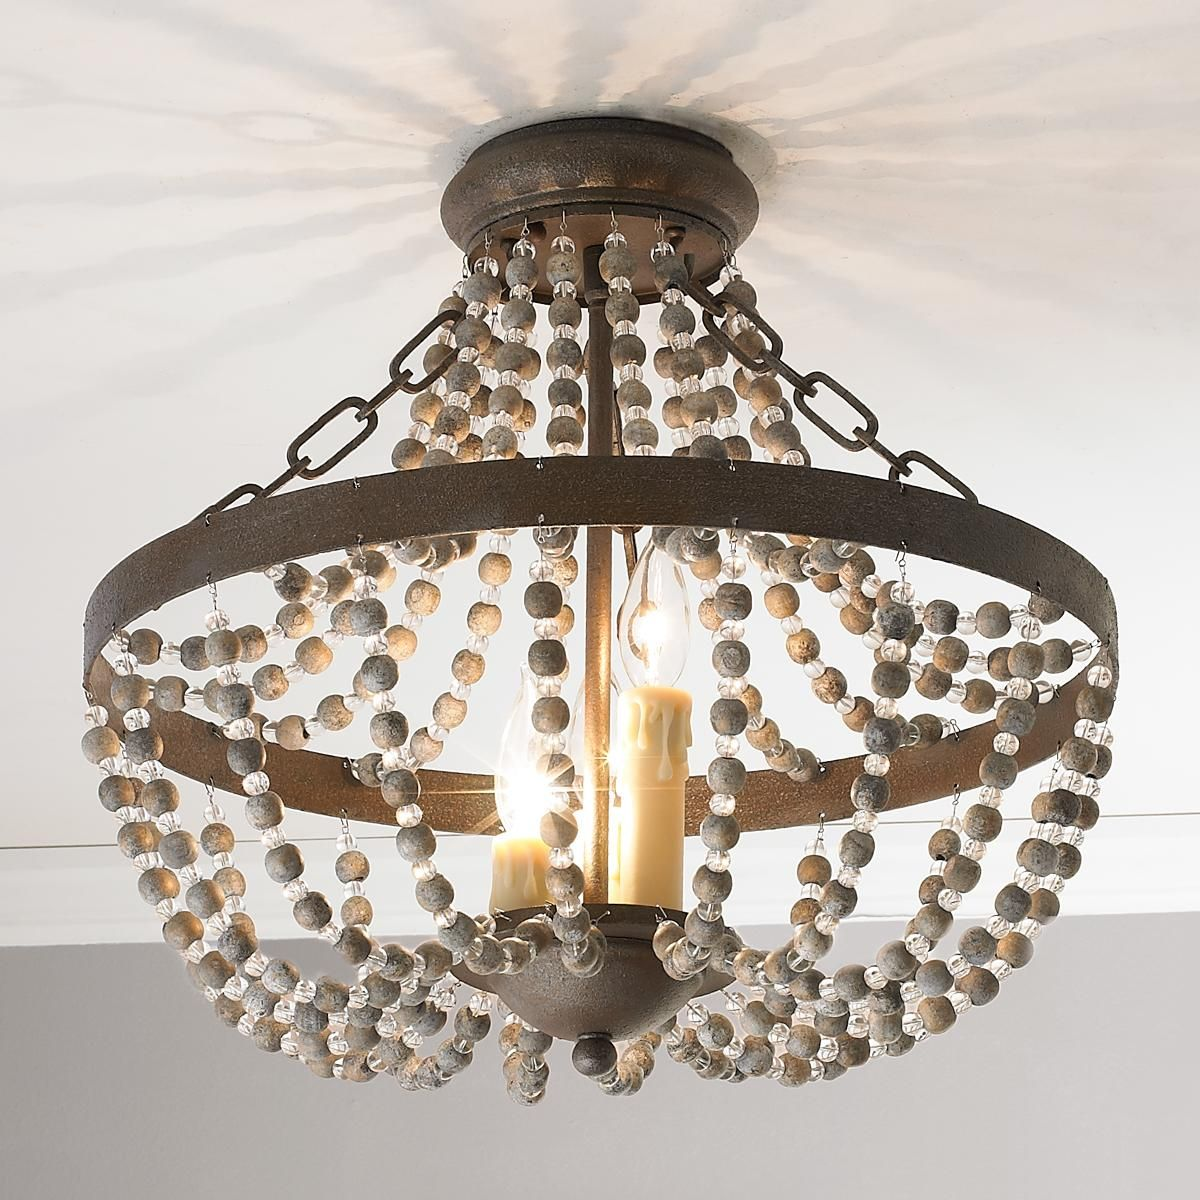 Rustic french country ceiling light ceiling lights for French ceiling design